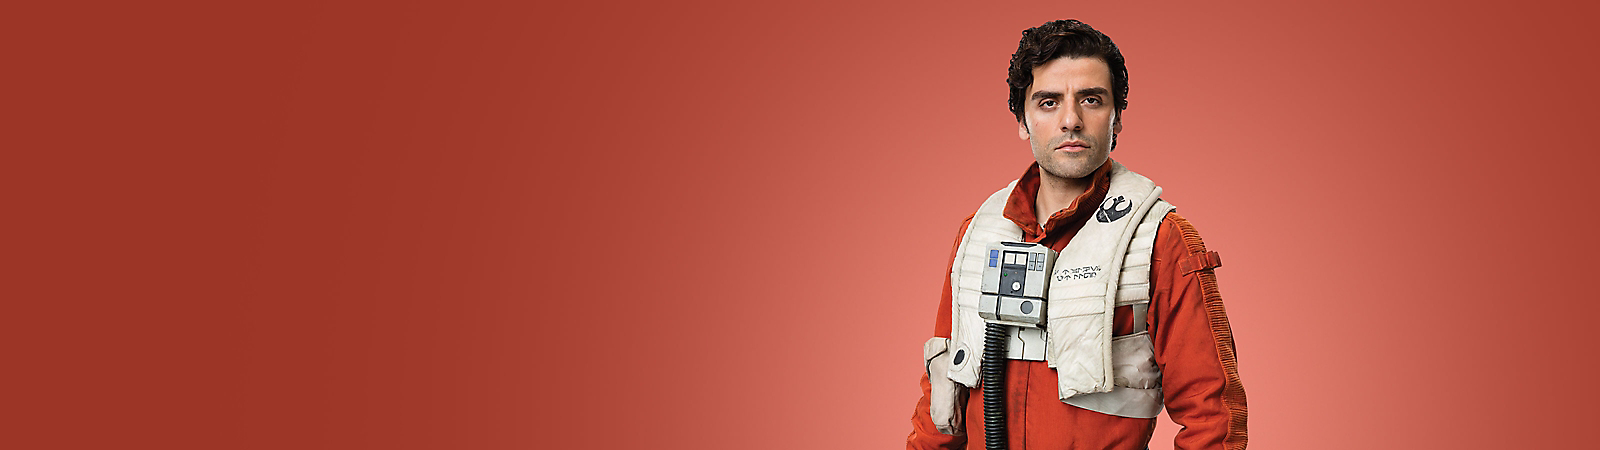 Background image of Poe Dameron